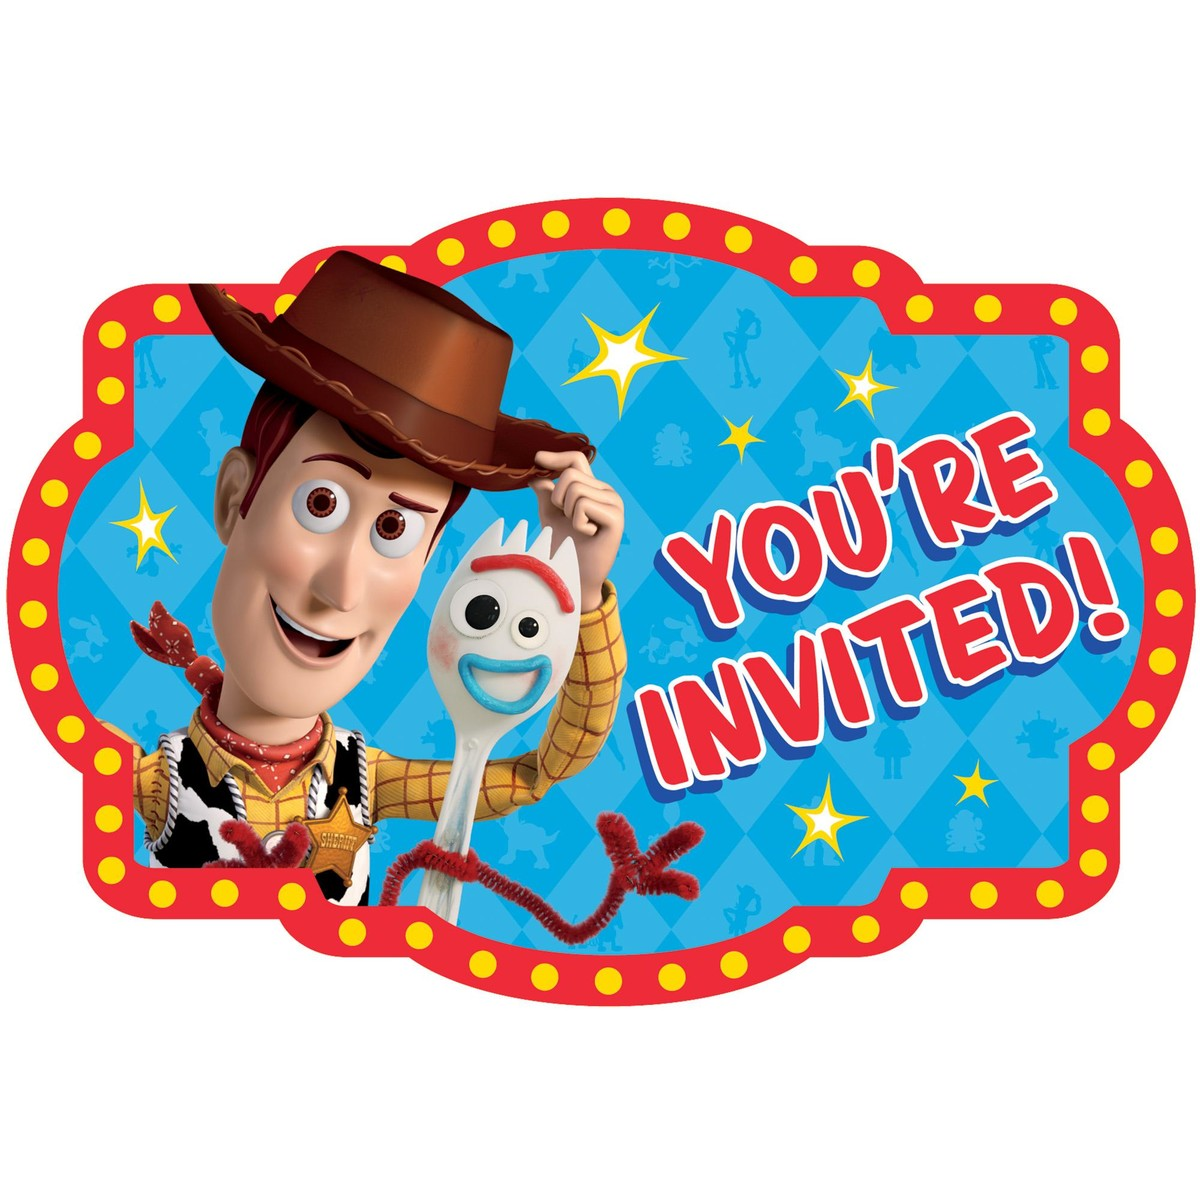 Toy Story 4 Postcard Invitation 8 Pack